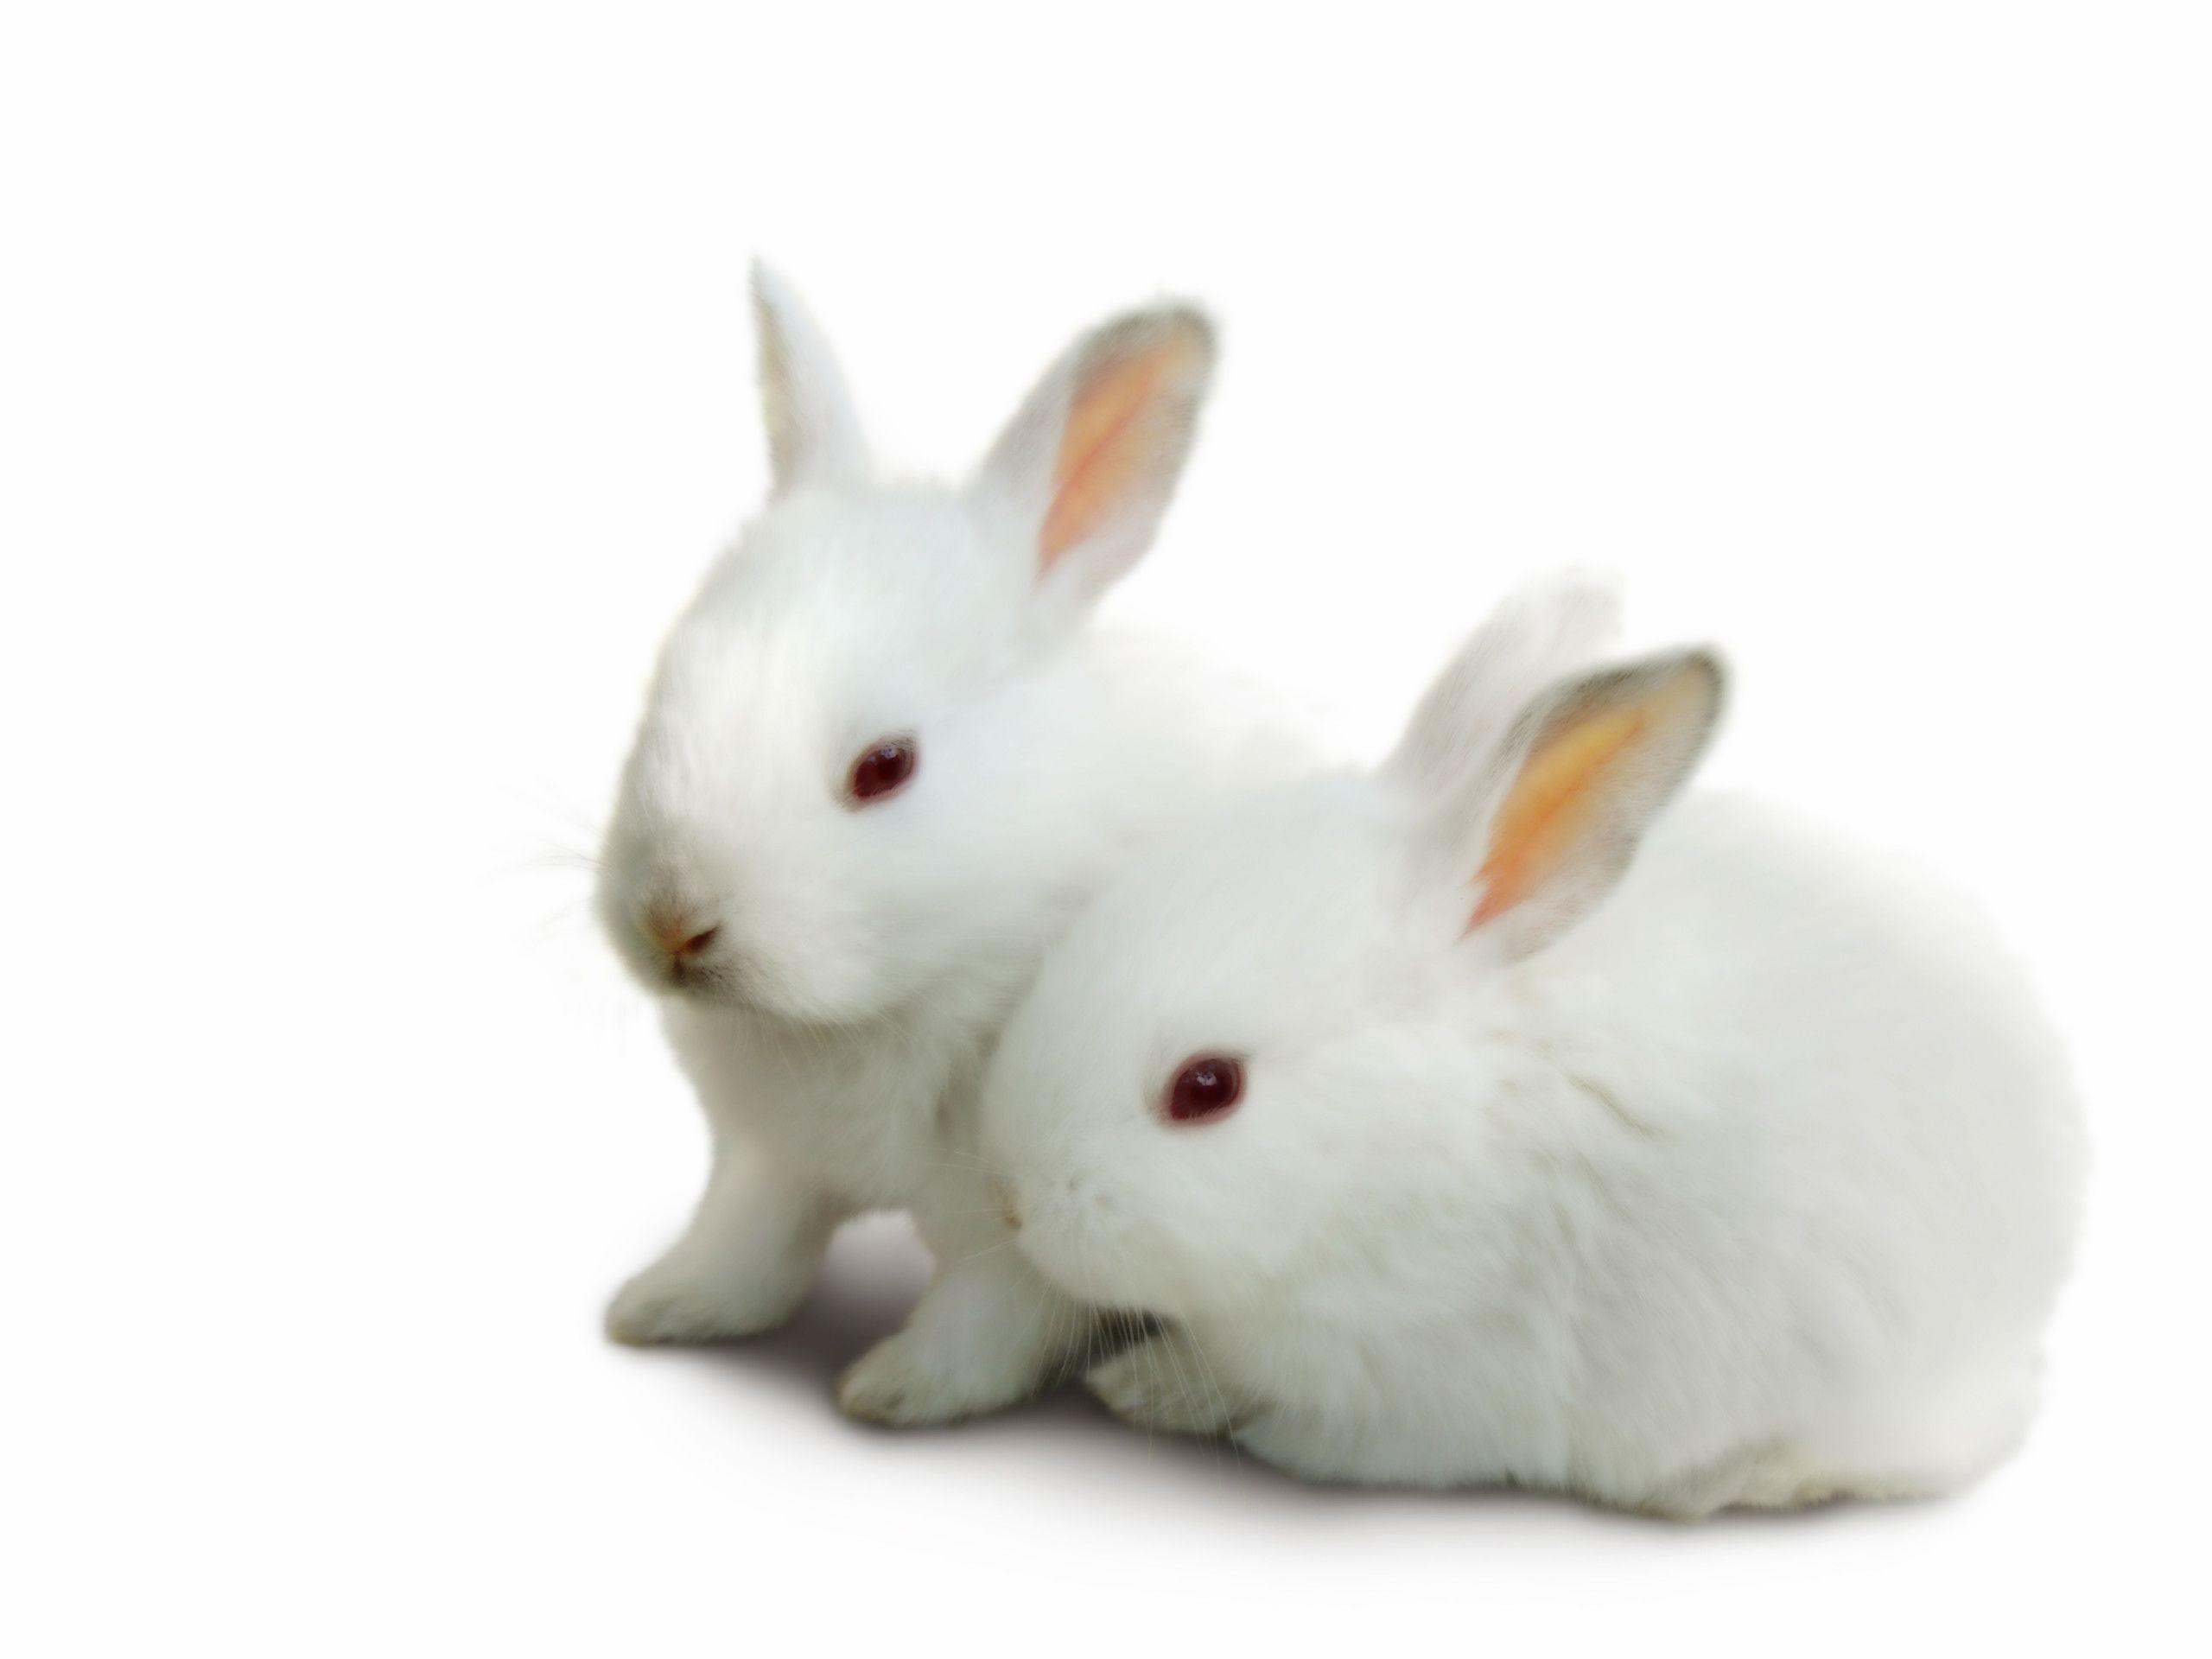 Cute White Baby Rabbit Wallpapers - Wallpaper Cave